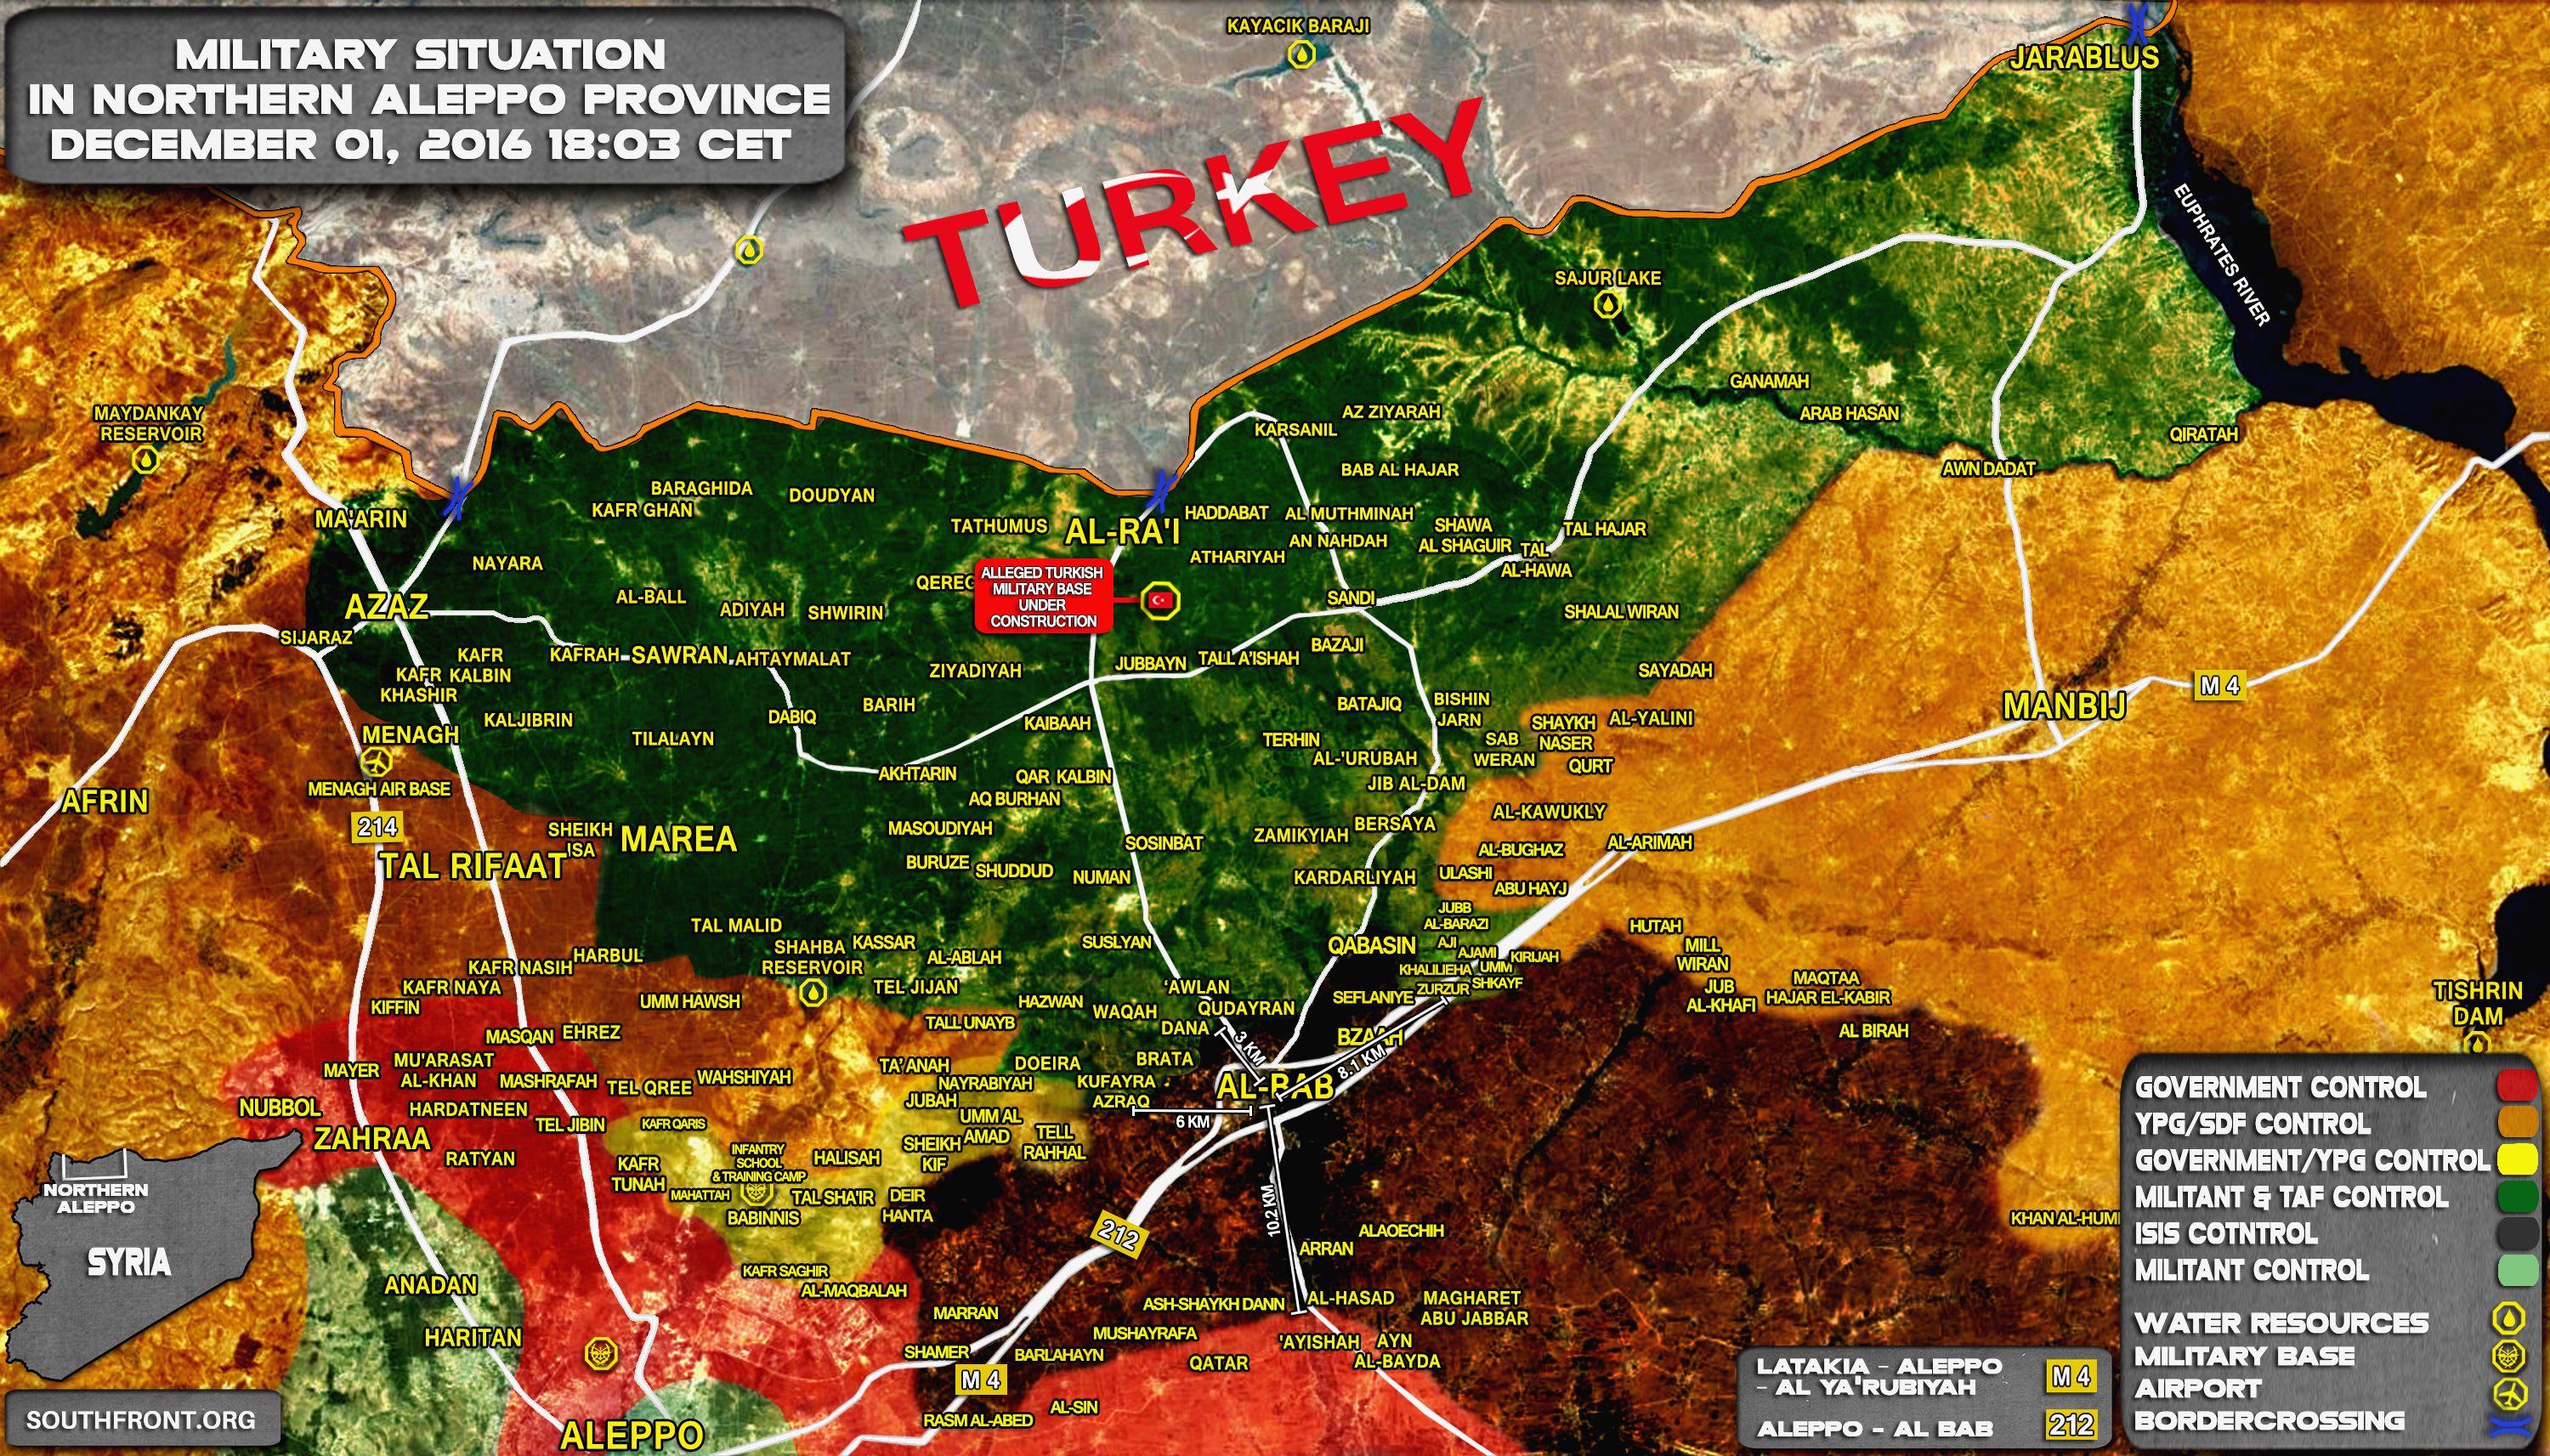 Syria Map: Military Situation in Northern Part of Aleppo Province on December 1, 2016